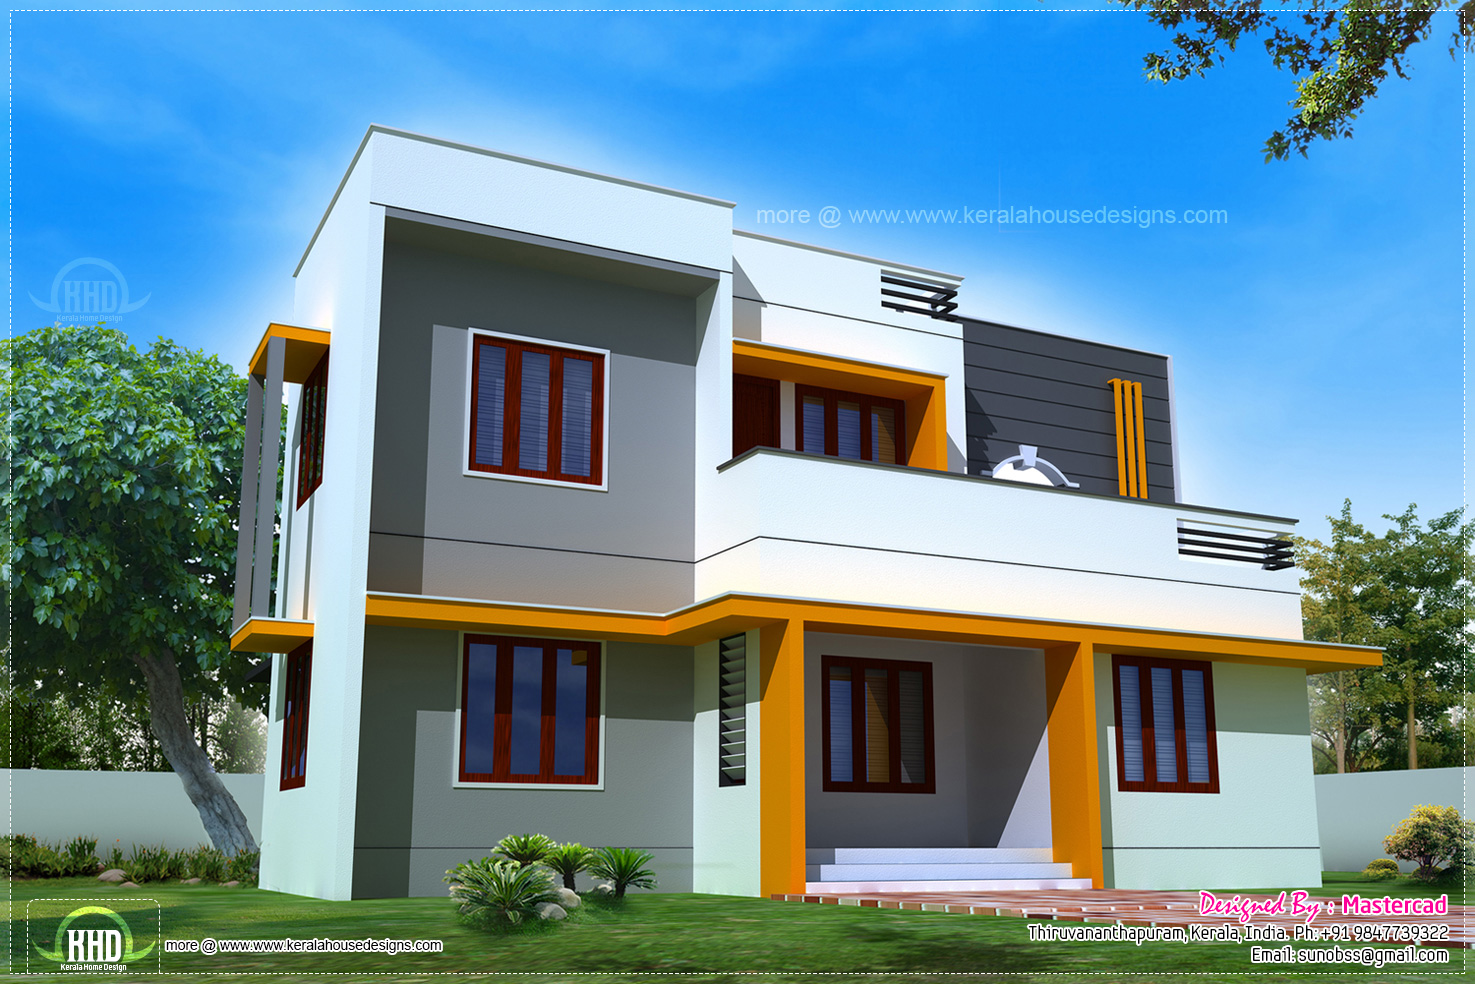 1400 modern contemporary home exterior kerala for Modern home designs photos